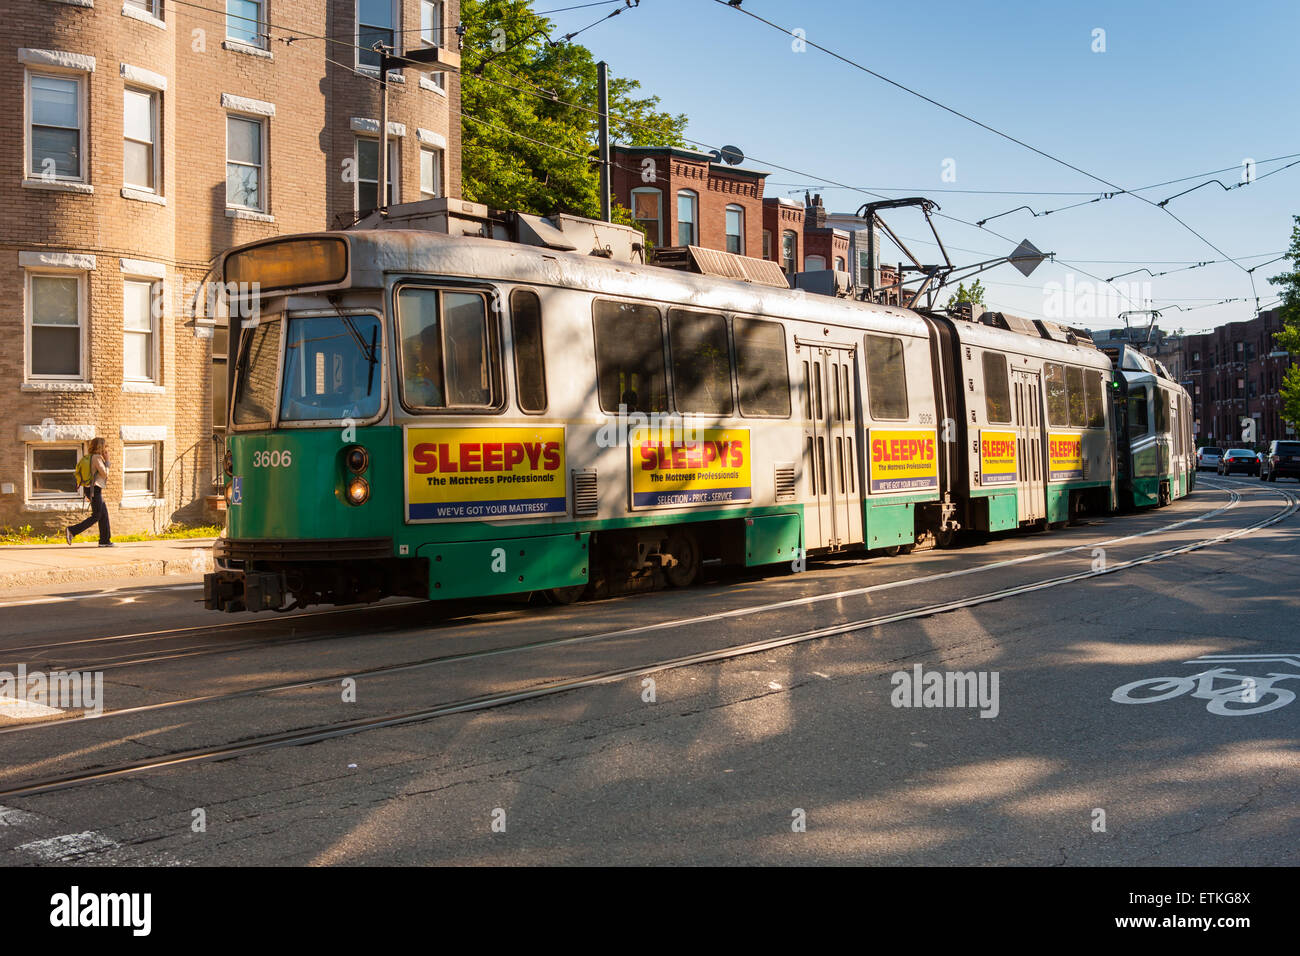 An inbound train on the MBTA Huntington Avenue Line approaches Mission Park Station in Boston, Massachusetts. - Stock Image